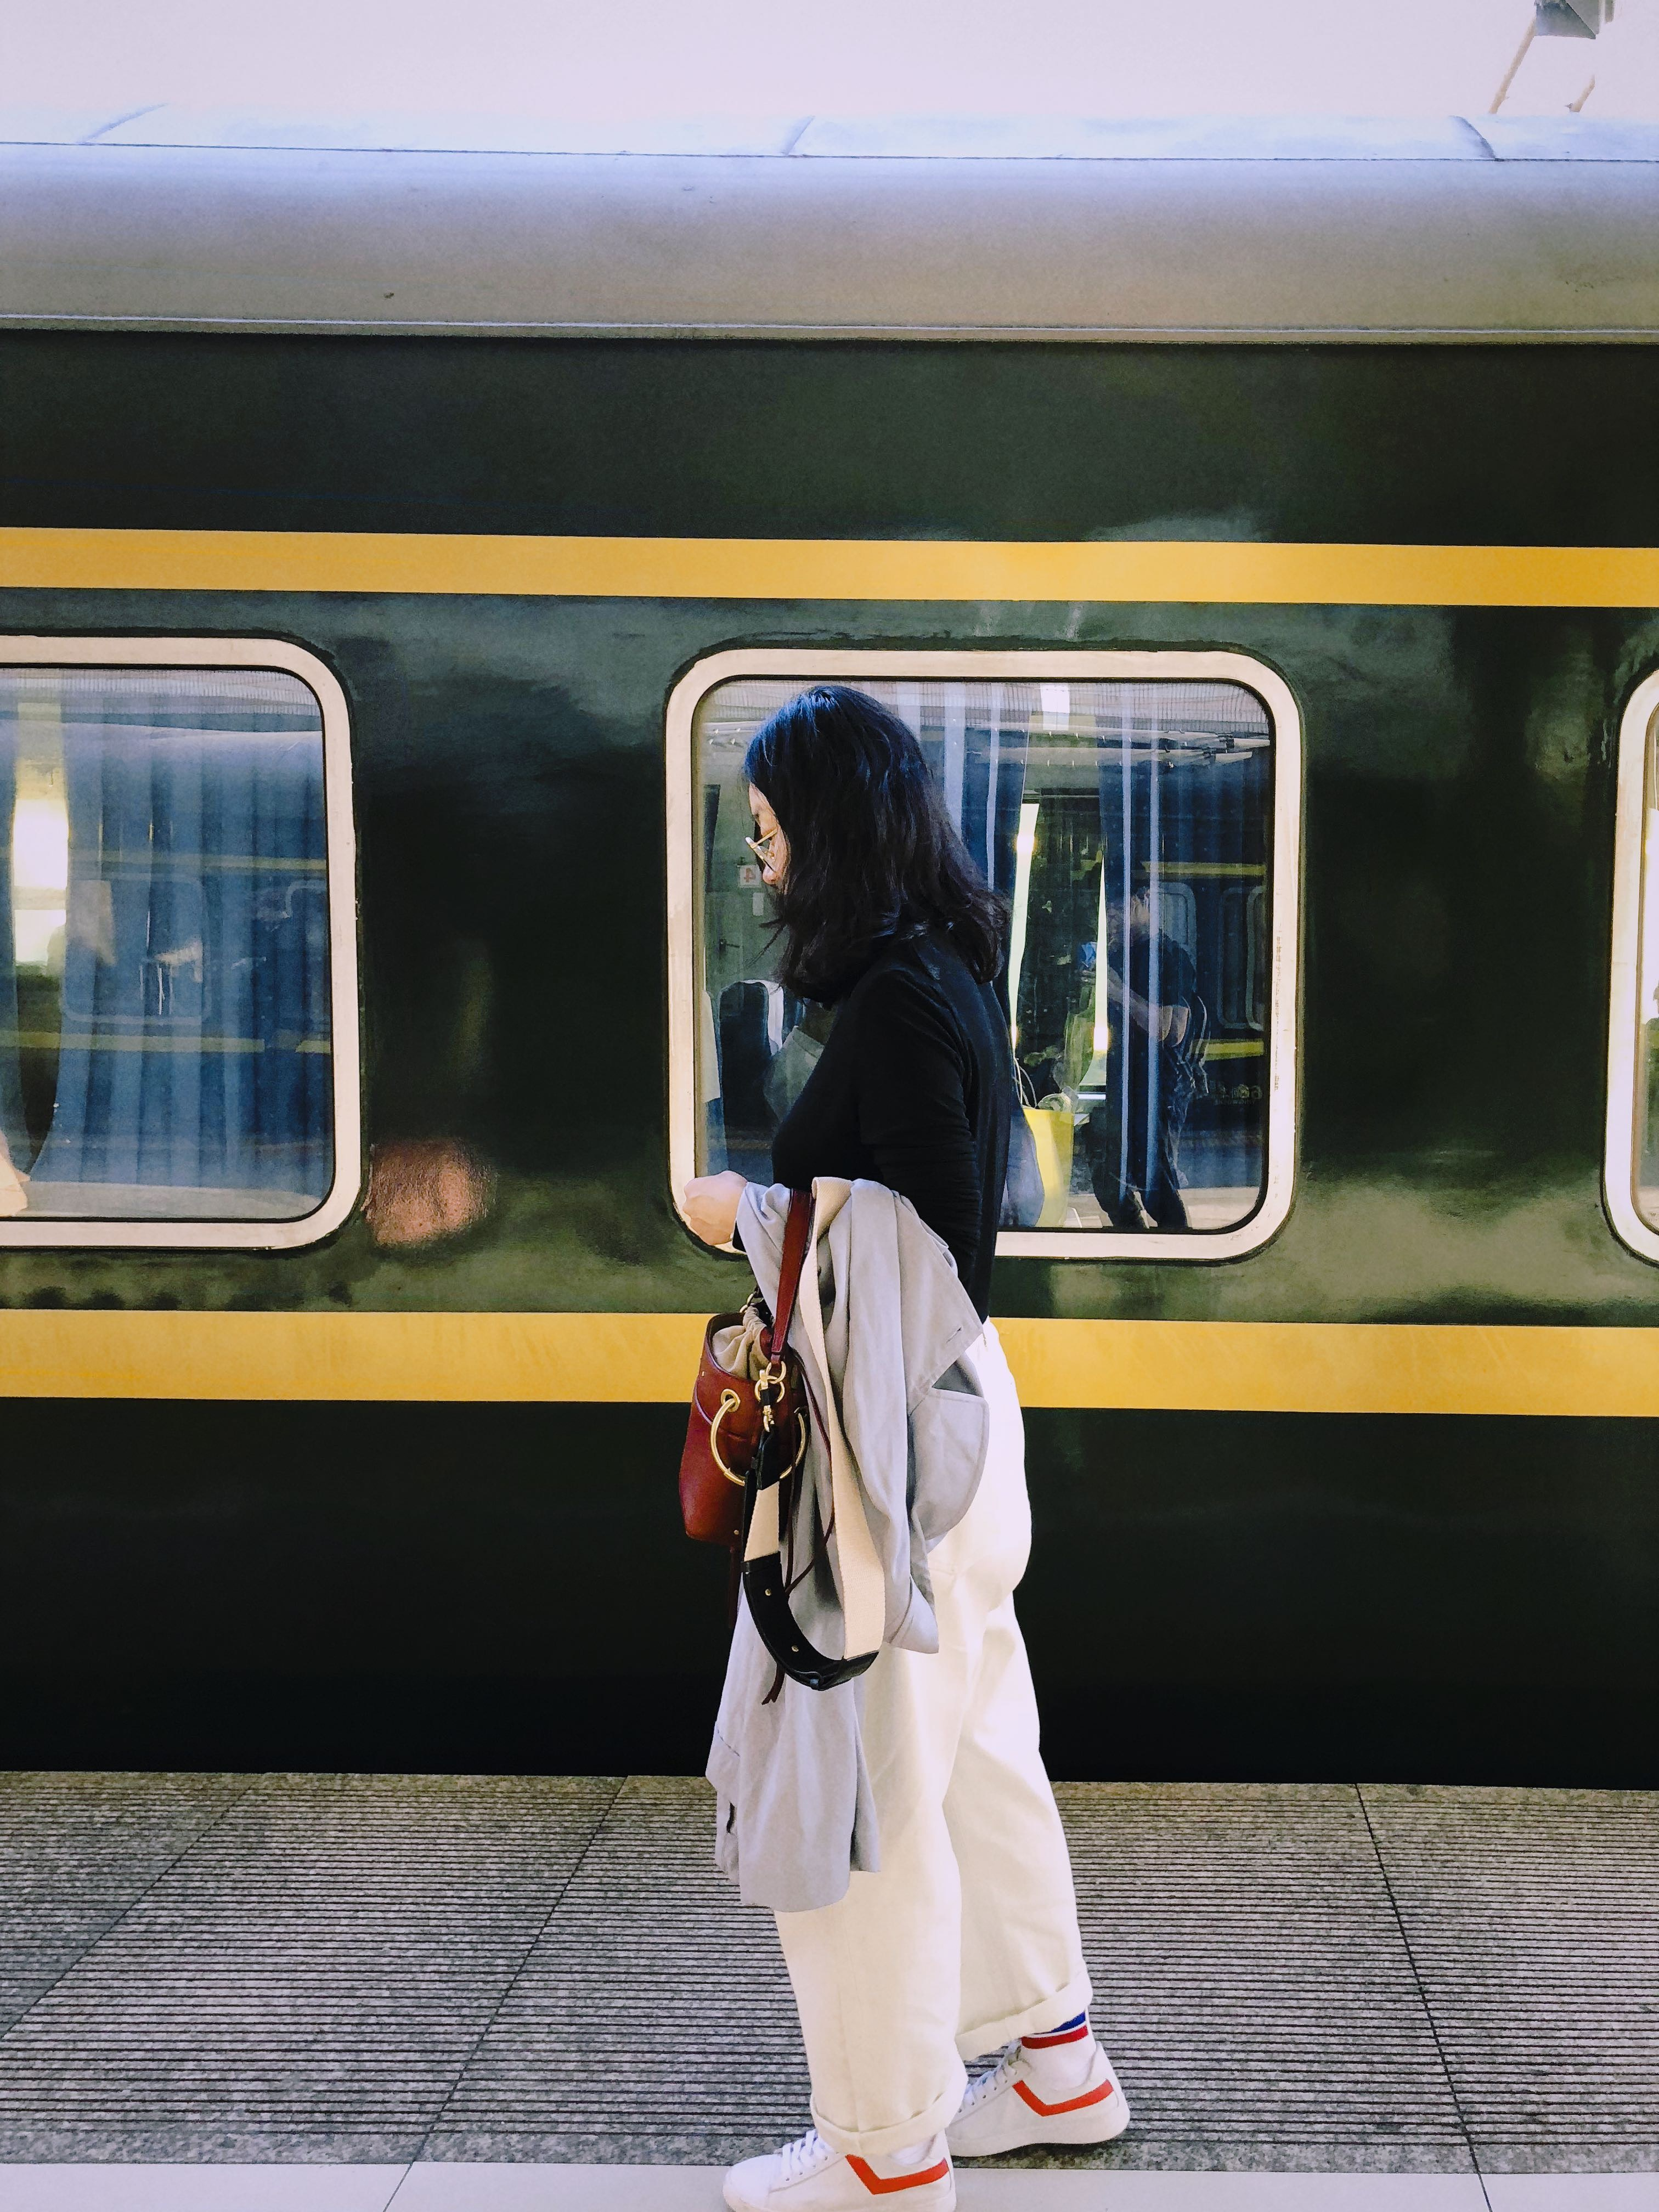 woman standing holding red bag near train